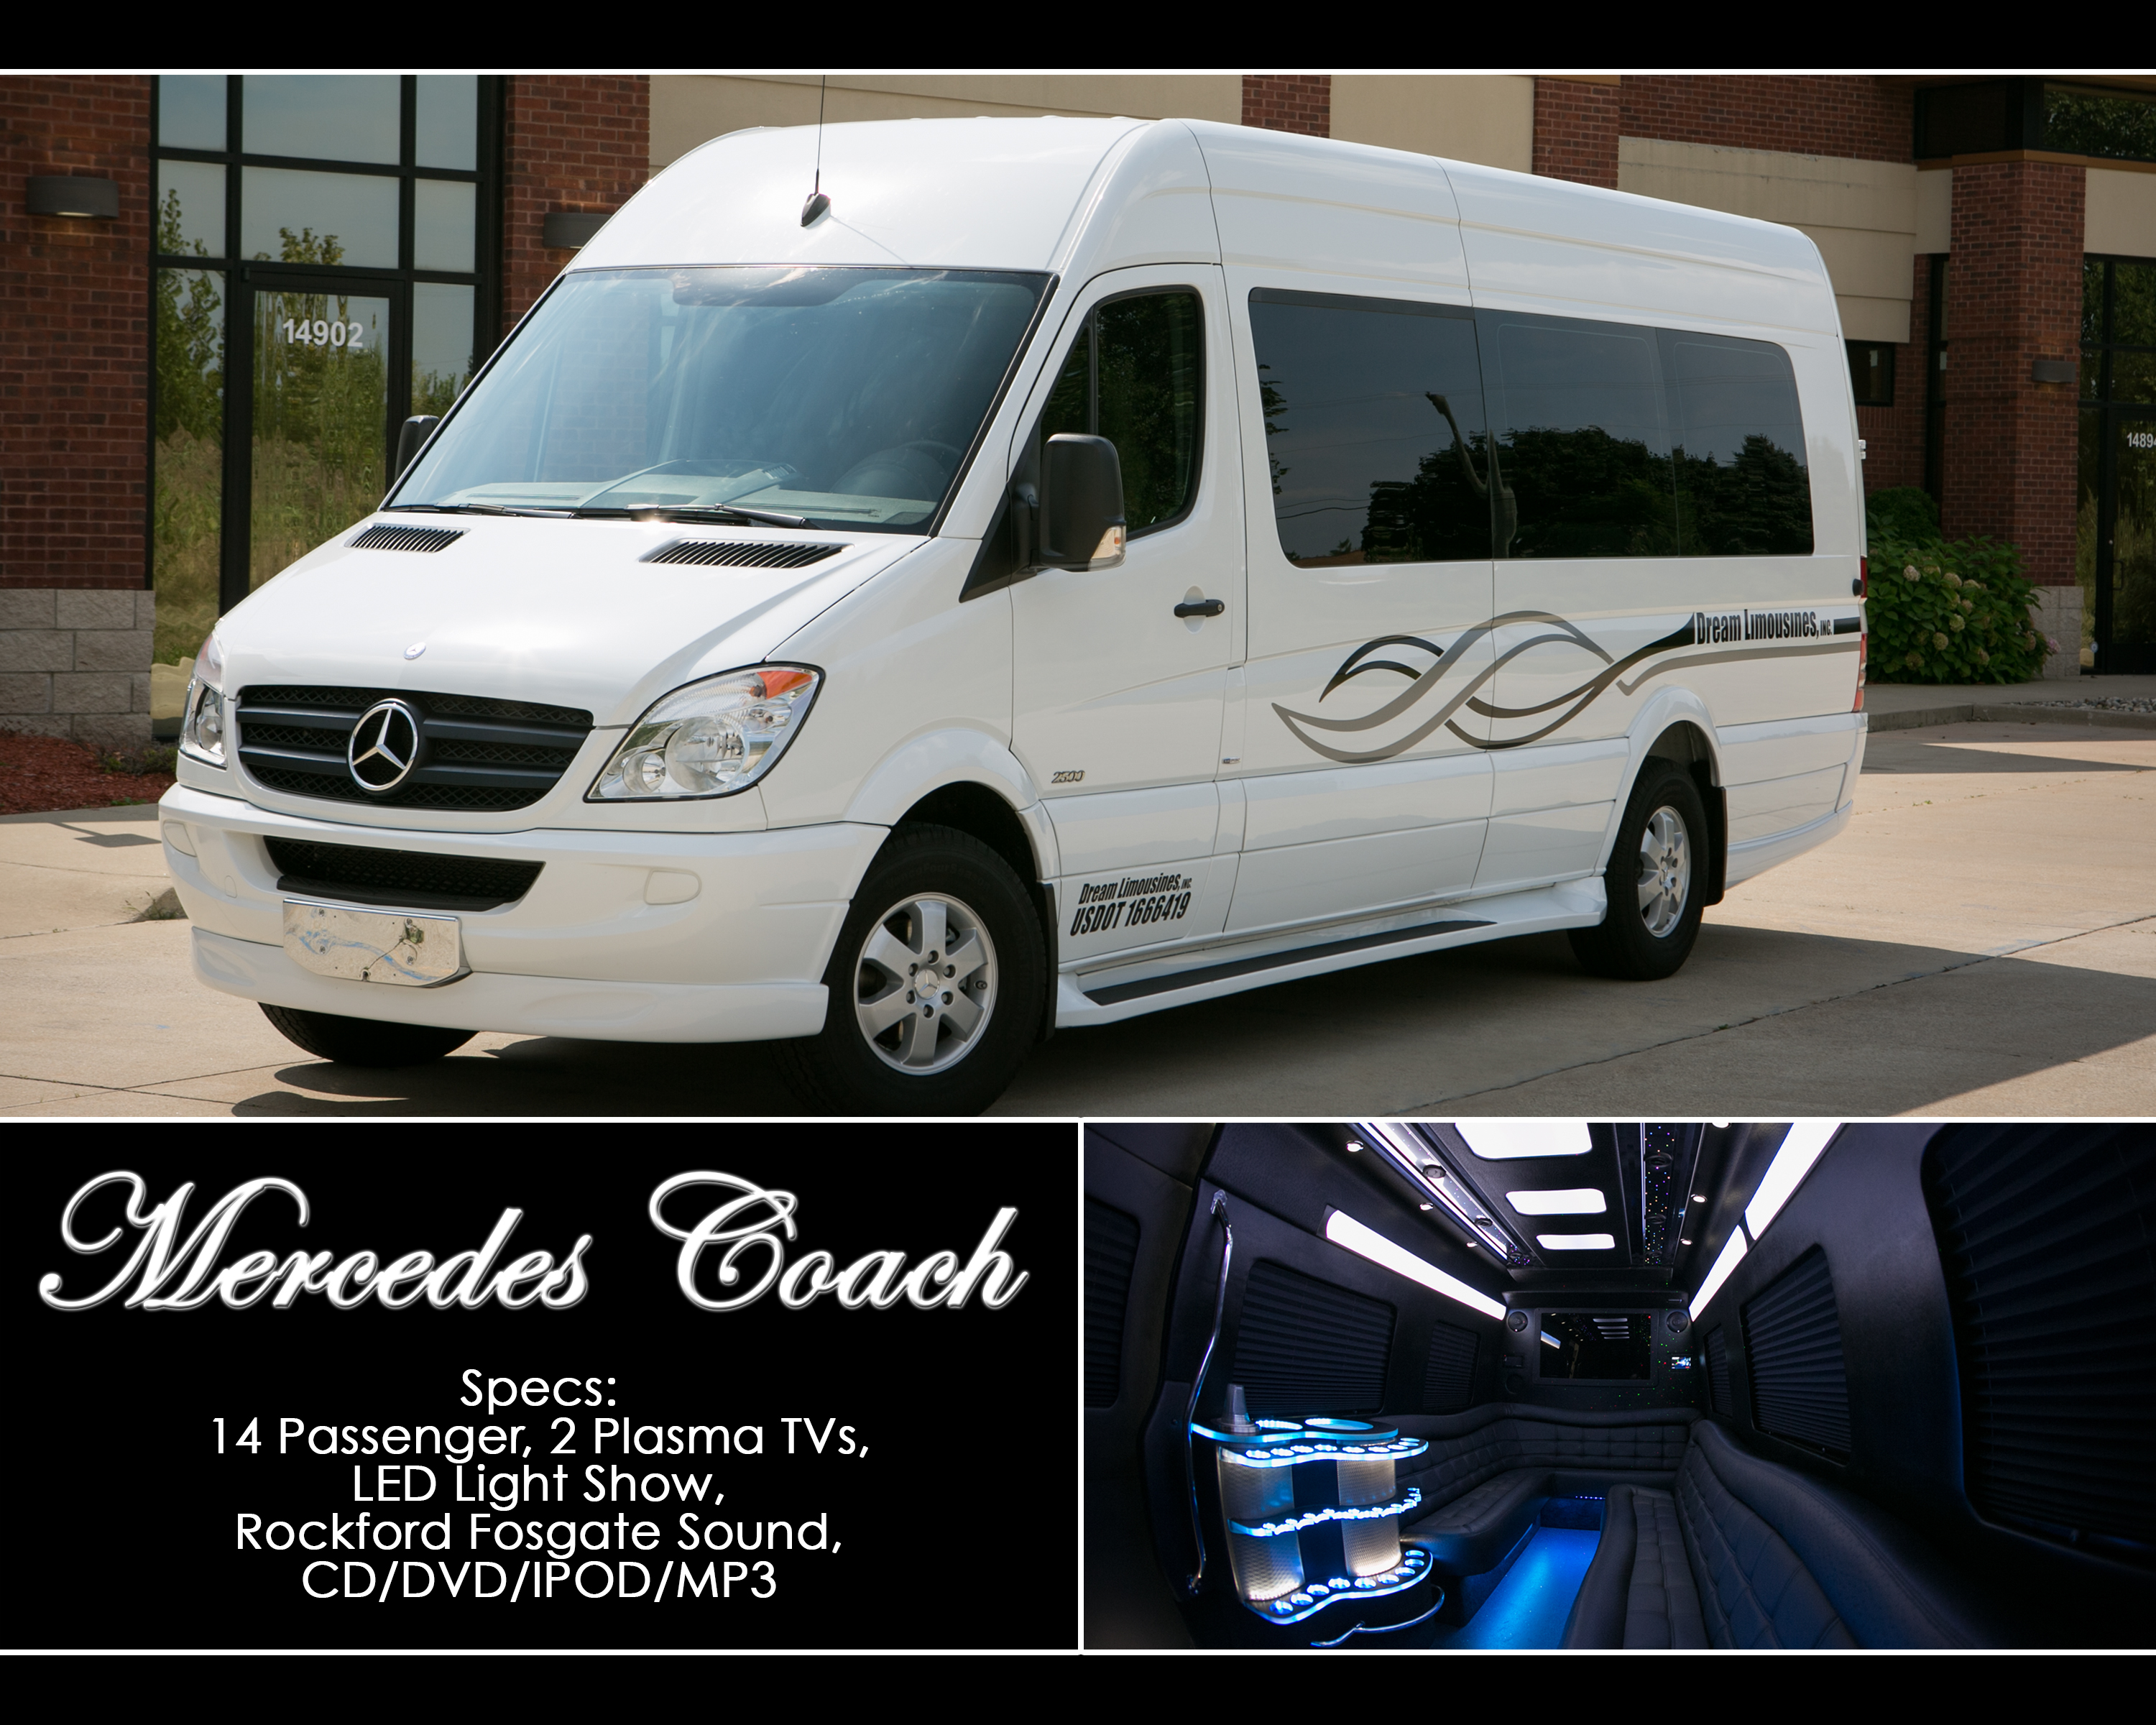 White Mercedes Coach 2 (8x10)